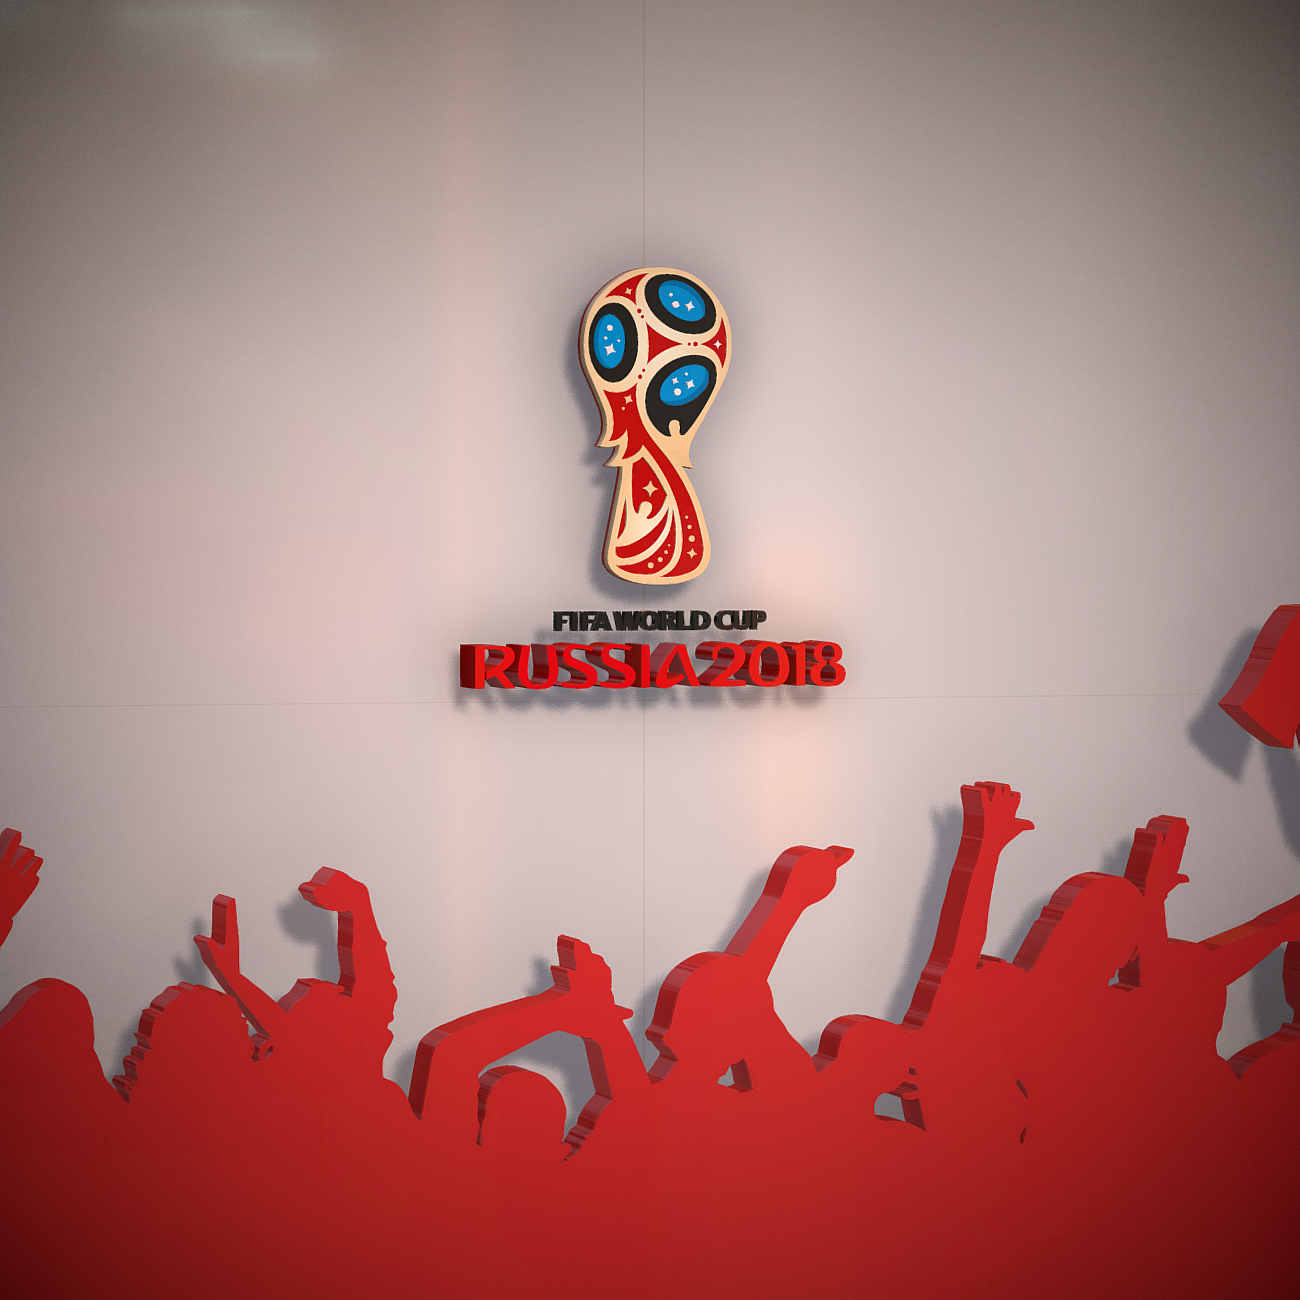 fifa world cup russia 2018 slyle 3d model 3ds max fbx ma mb obj 269746